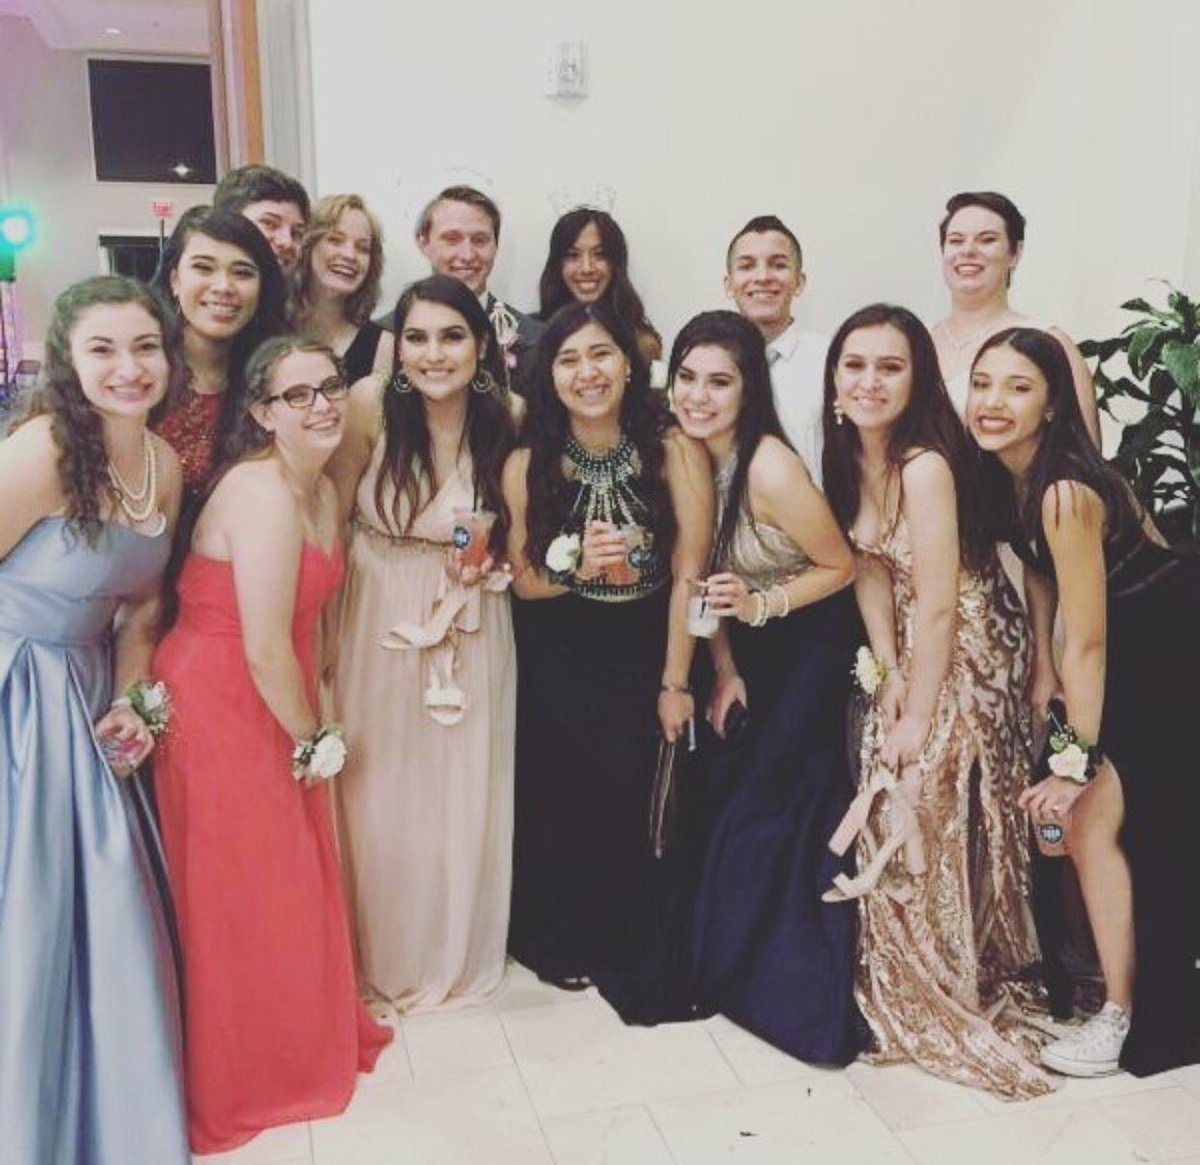 here's a part two with my favorite peeps post prom